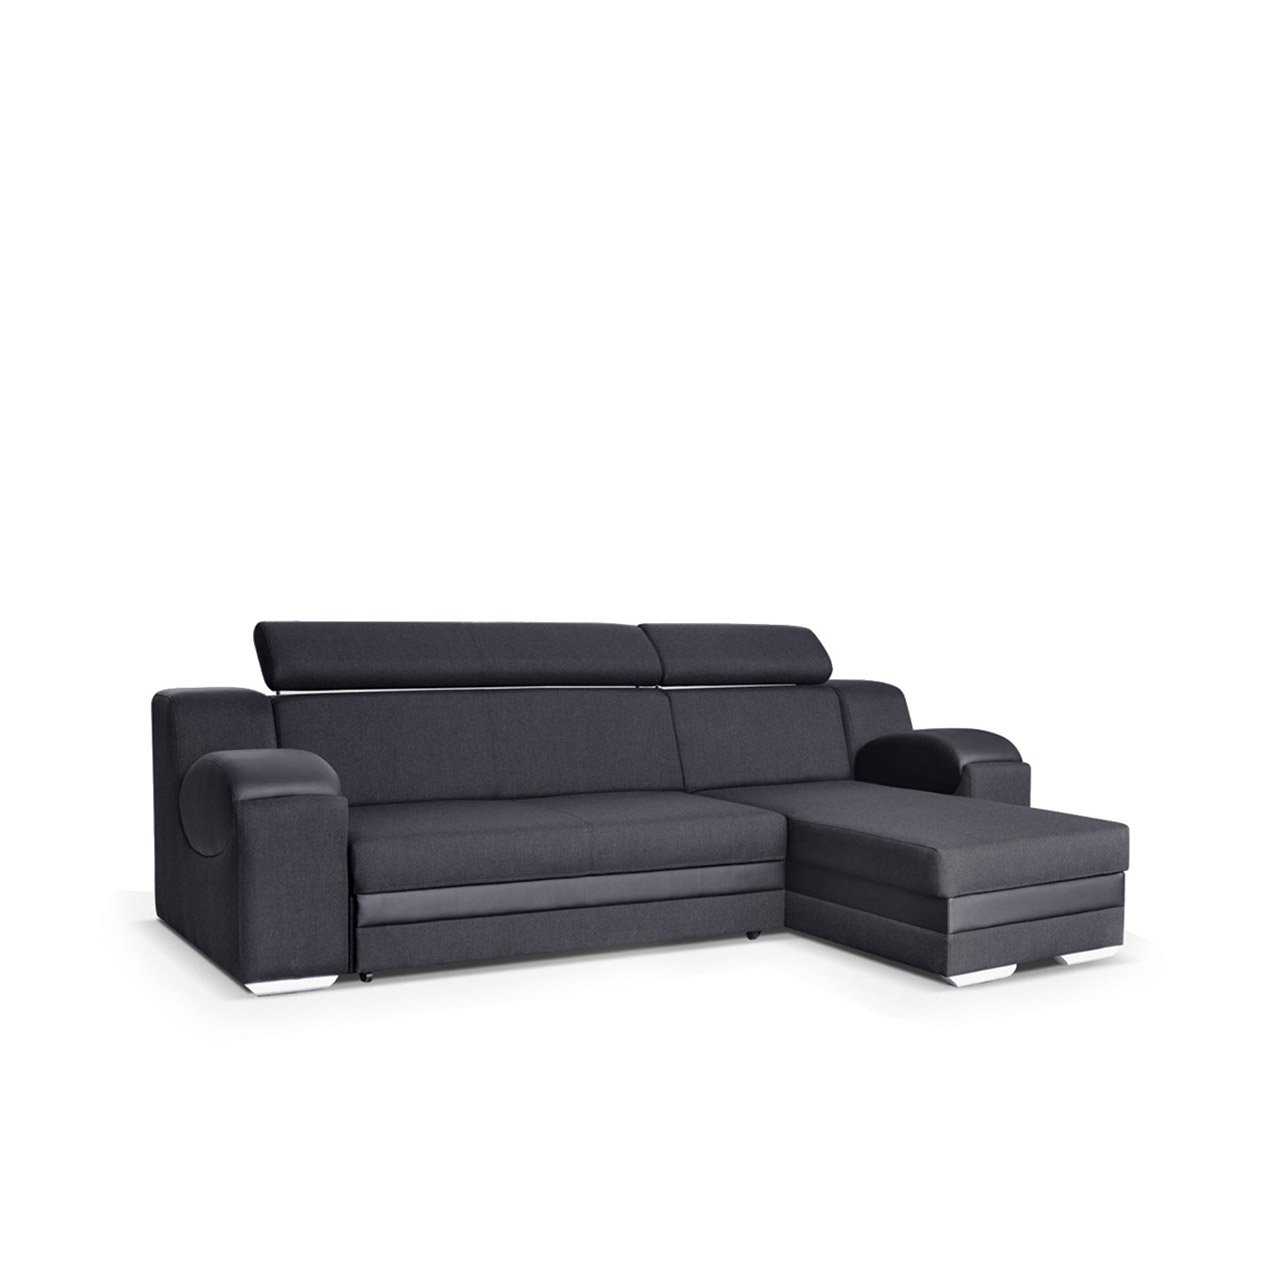 kopfsttze fr sofa beautiful modernes sofa leder pltze kopfsttze cielo with kopfsttze fr sofa. Black Bedroom Furniture Sets. Home Design Ideas